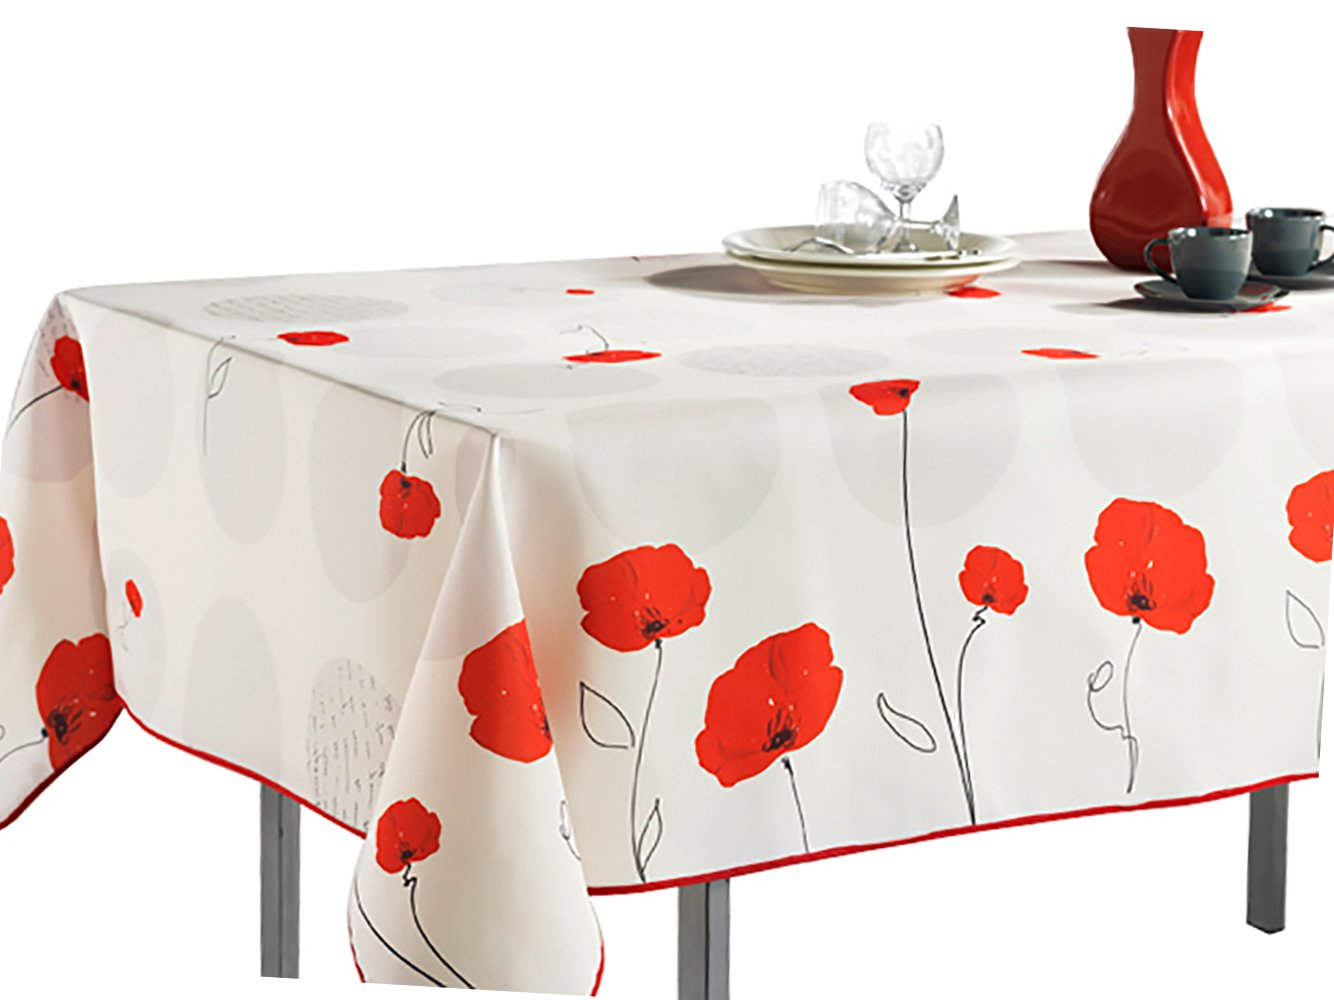 "60 x 95-Inch Rectangular Tablecloth Ivory White Red Poppy Flowers, Stain Resistant, Washable, Liquid Spills bead up, Seats 8 to 10 People (Other Size Available: 63"" Round, 60 x 80"", 60 x 120"")."